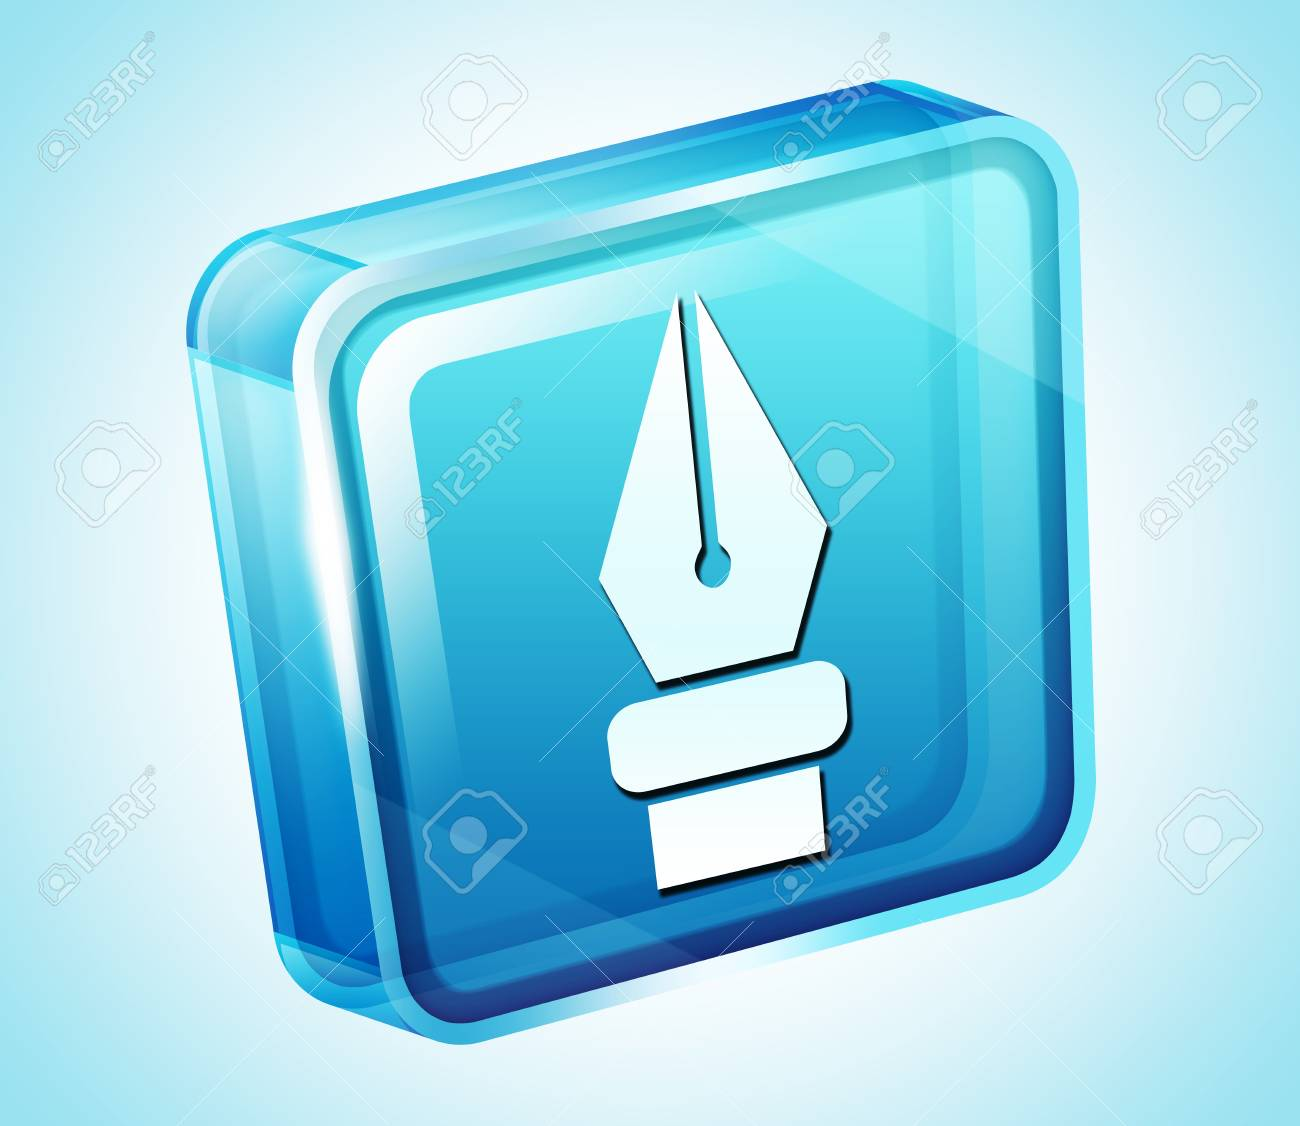 Transparent to the 3d icon Stock Photo - 15903285